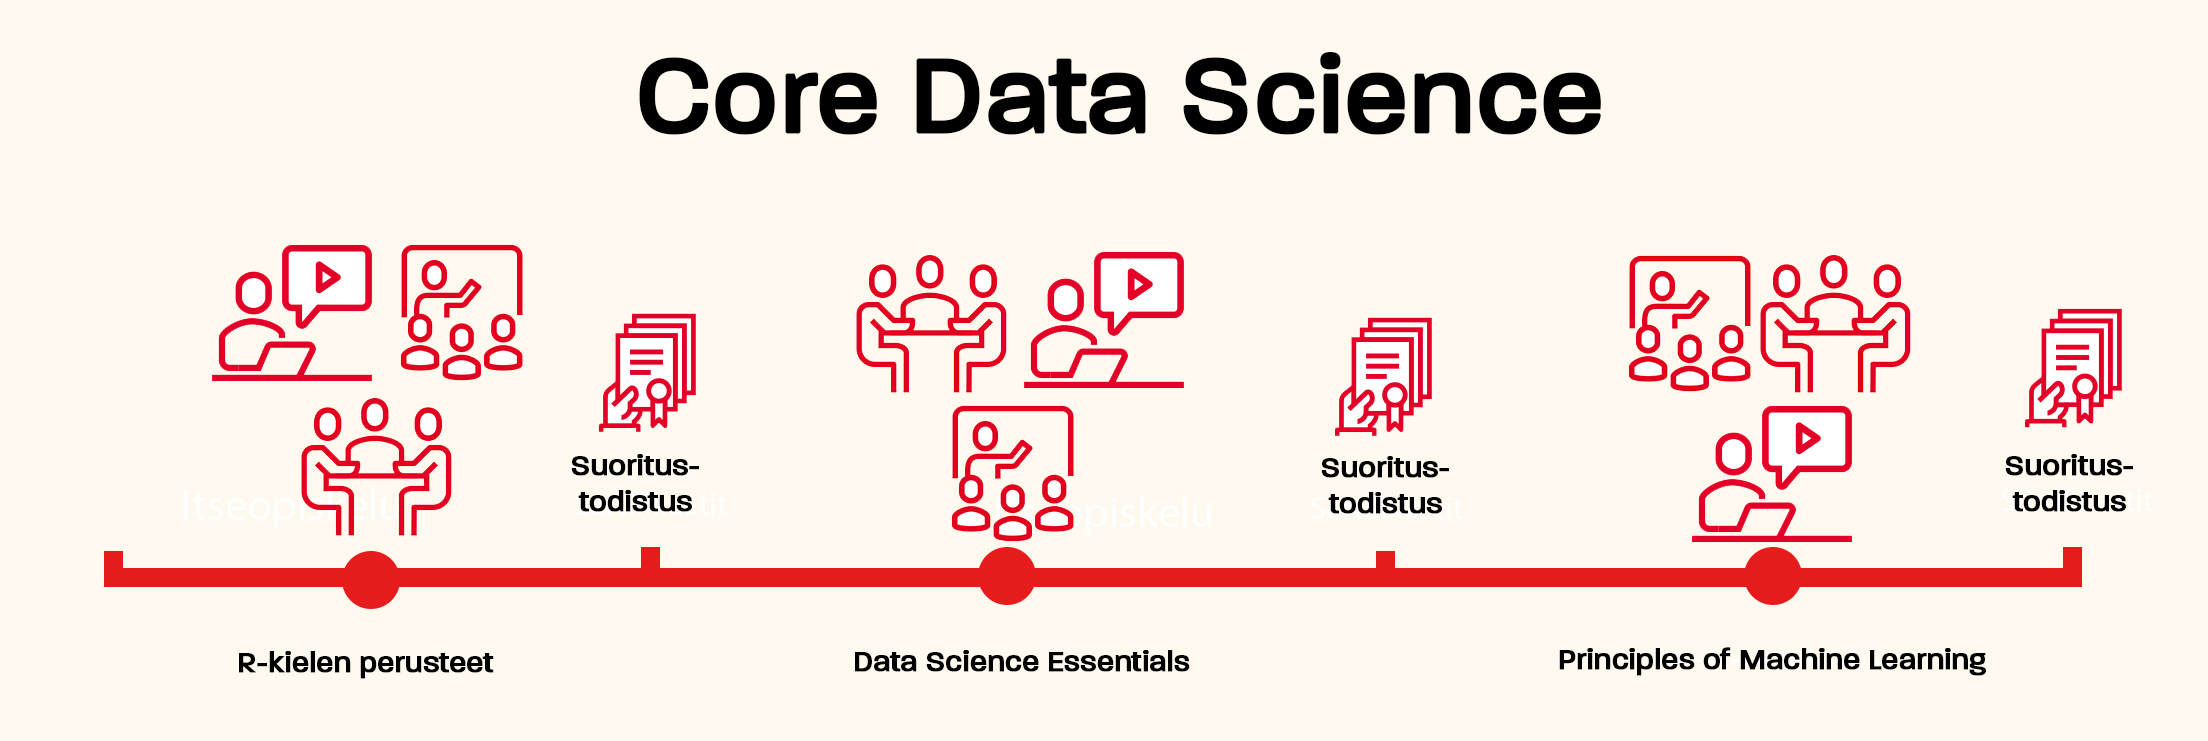 Core data science